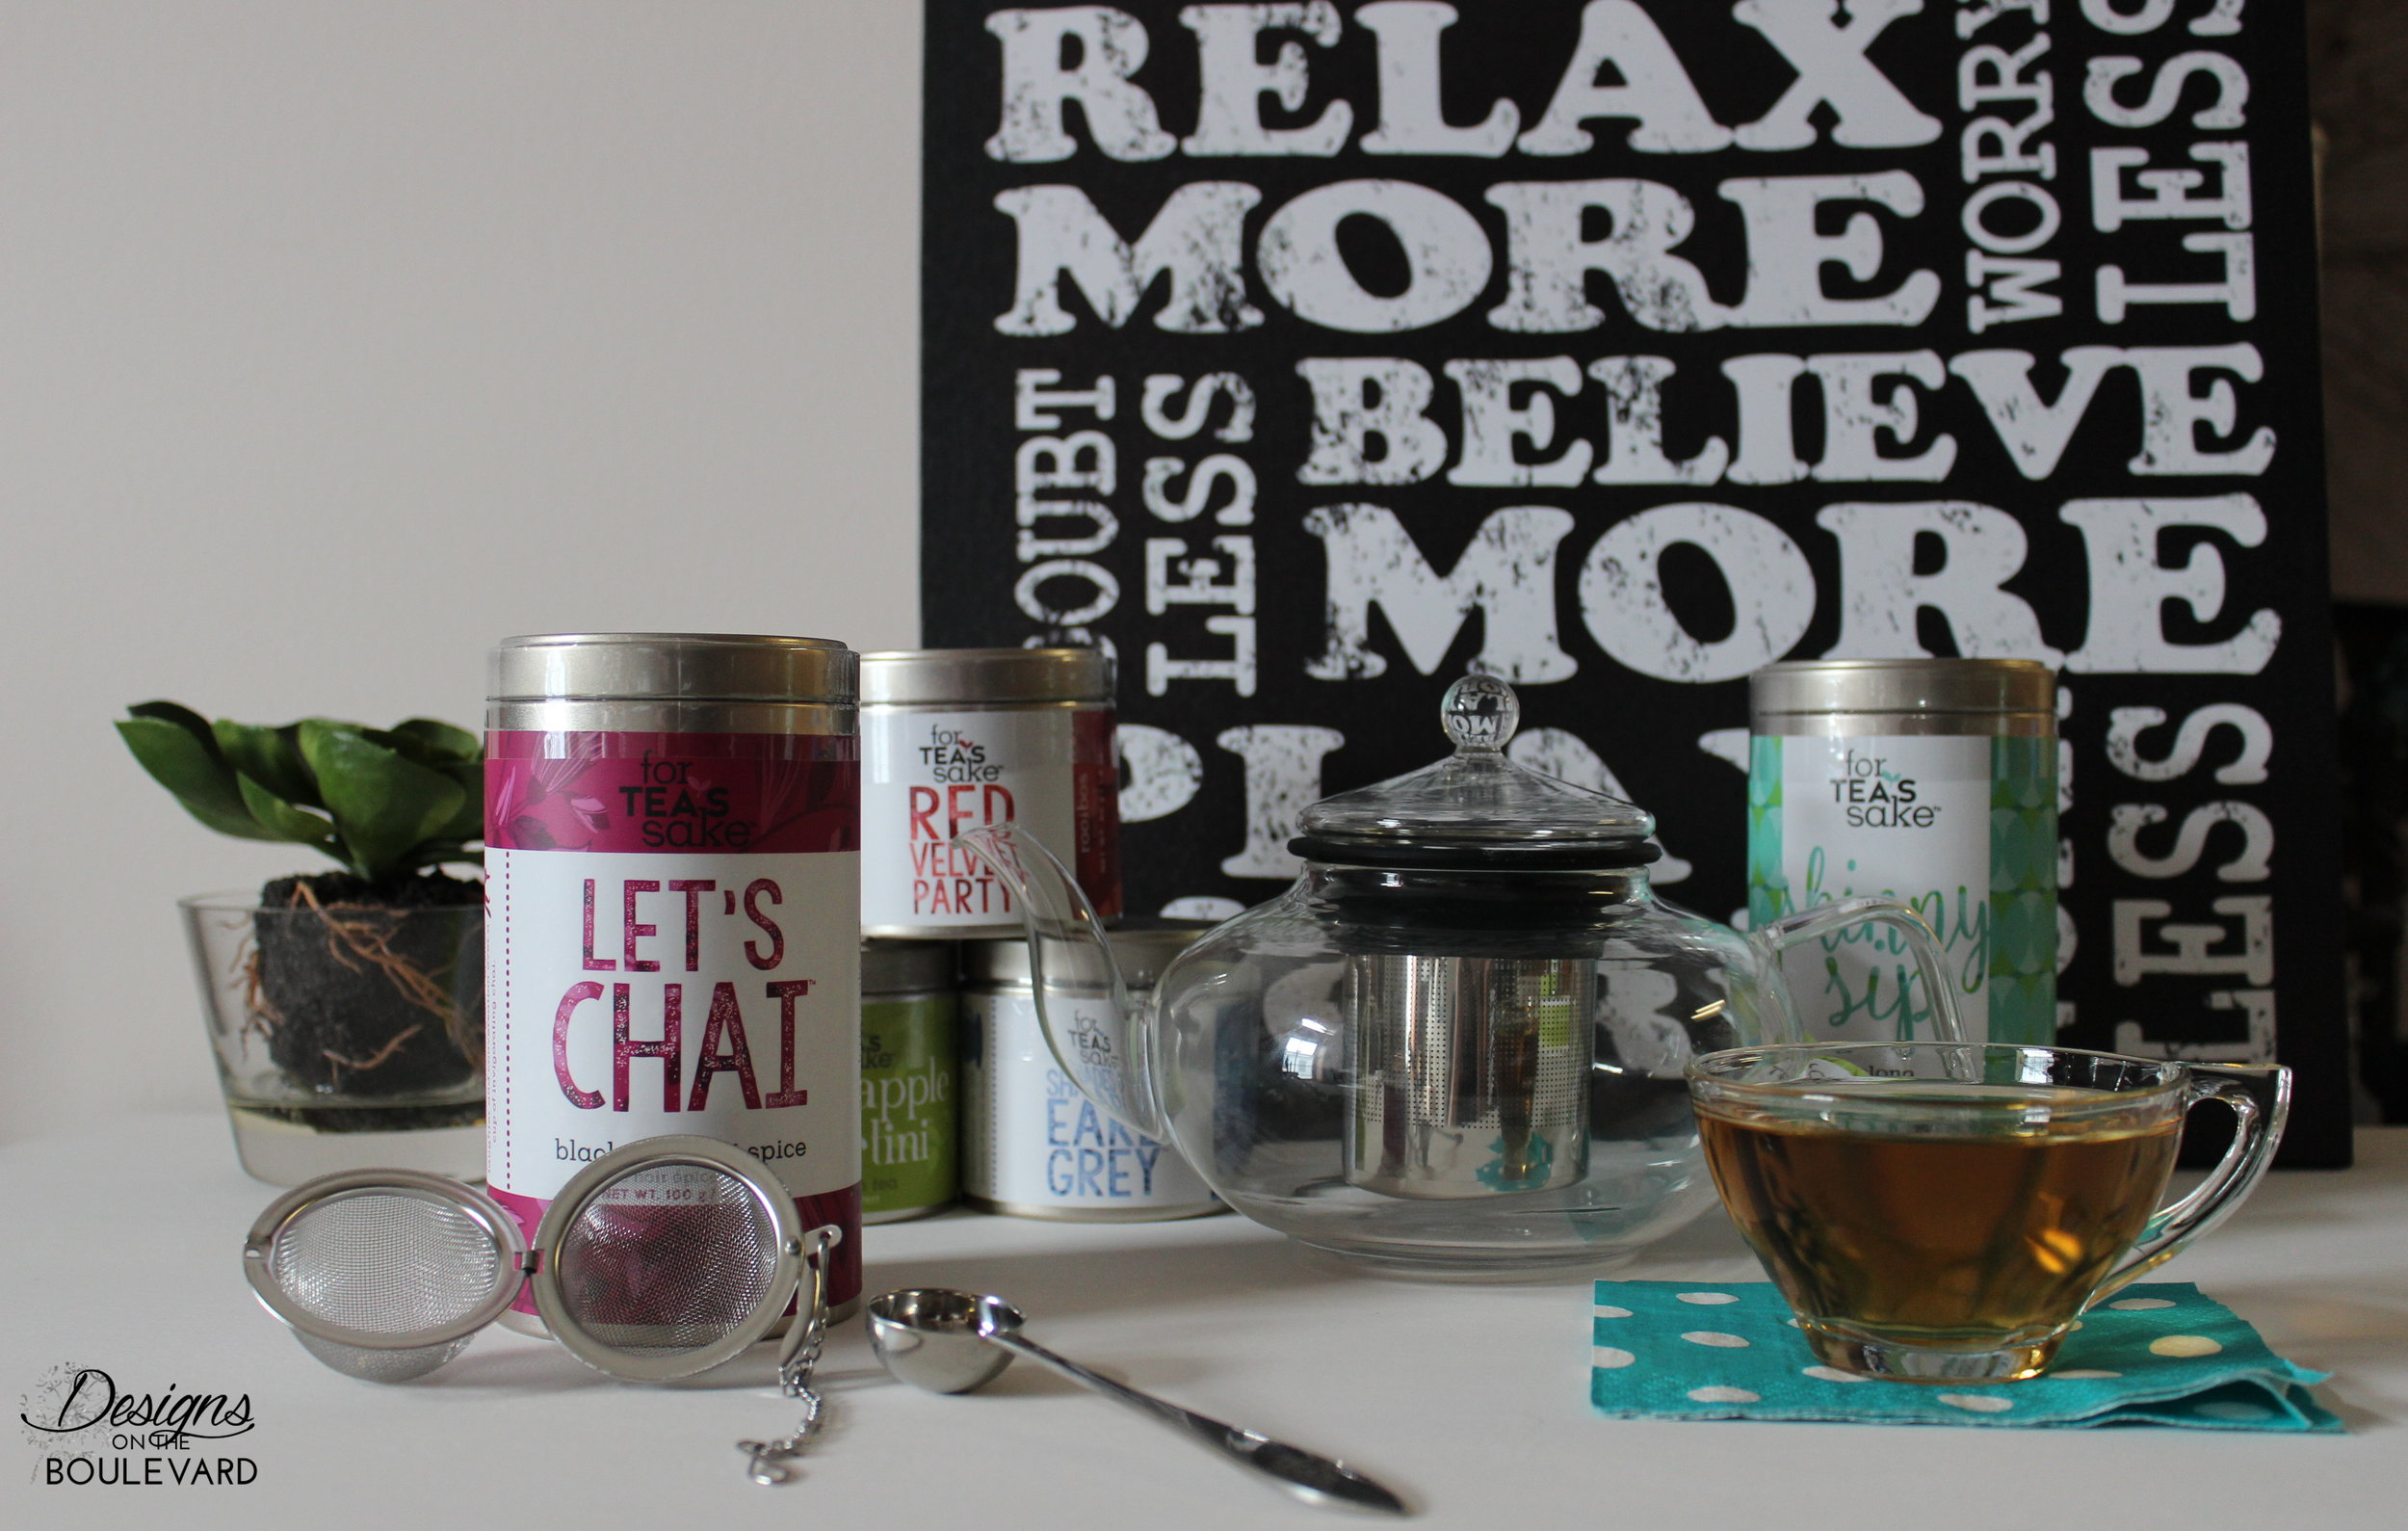 Large selection of teas, accessories, and mugs!